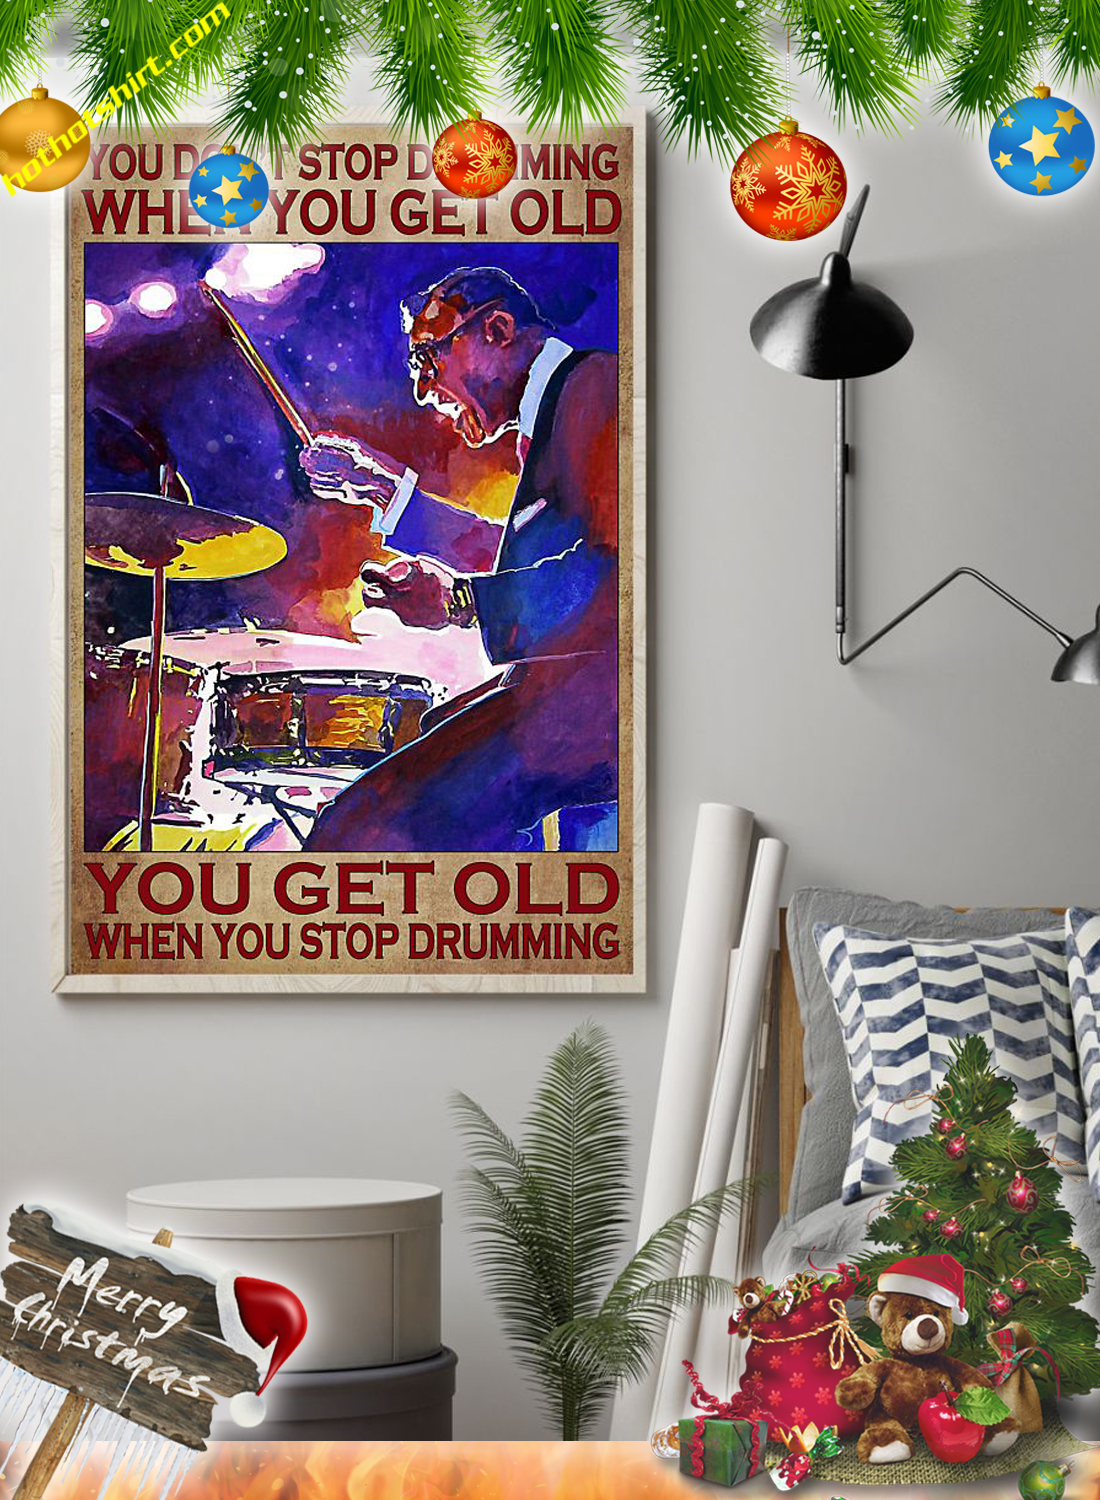 You don't stop drumming when you get old poster 1